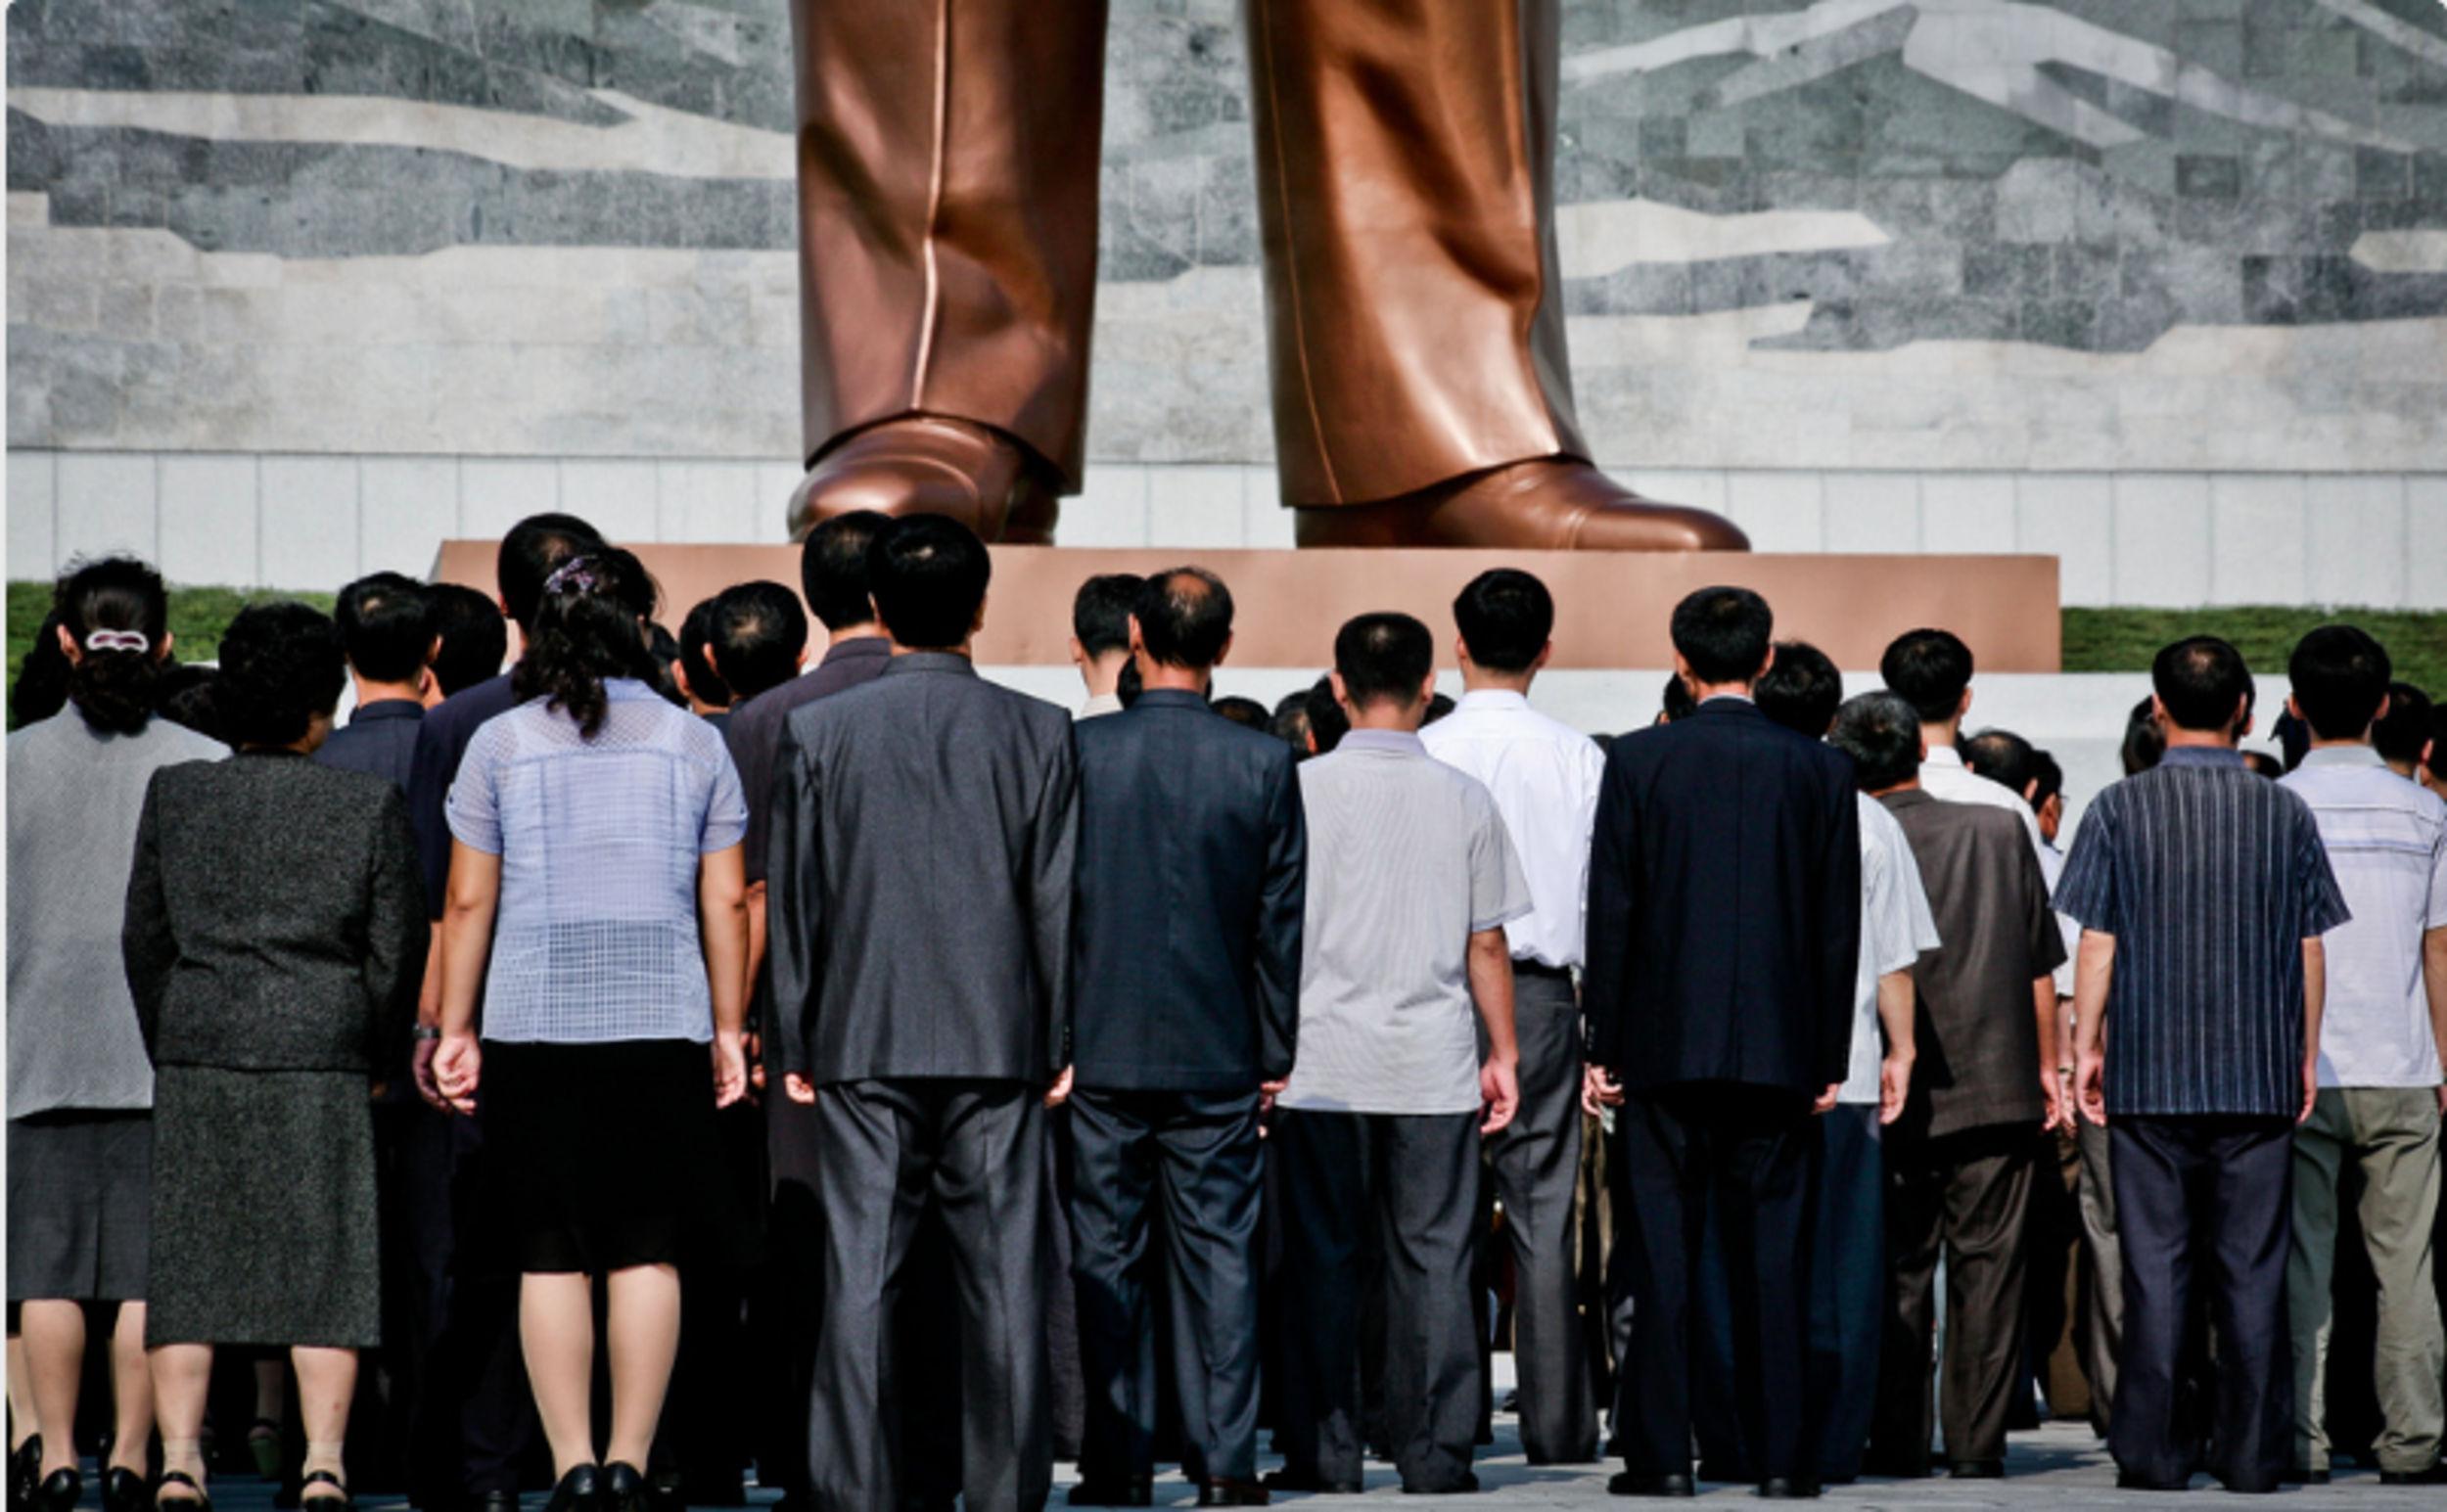 Were 33 Christians Really Up For Execution In North Korea? - You can't believe everything on the internet.Written for Christ and Pop Culture.